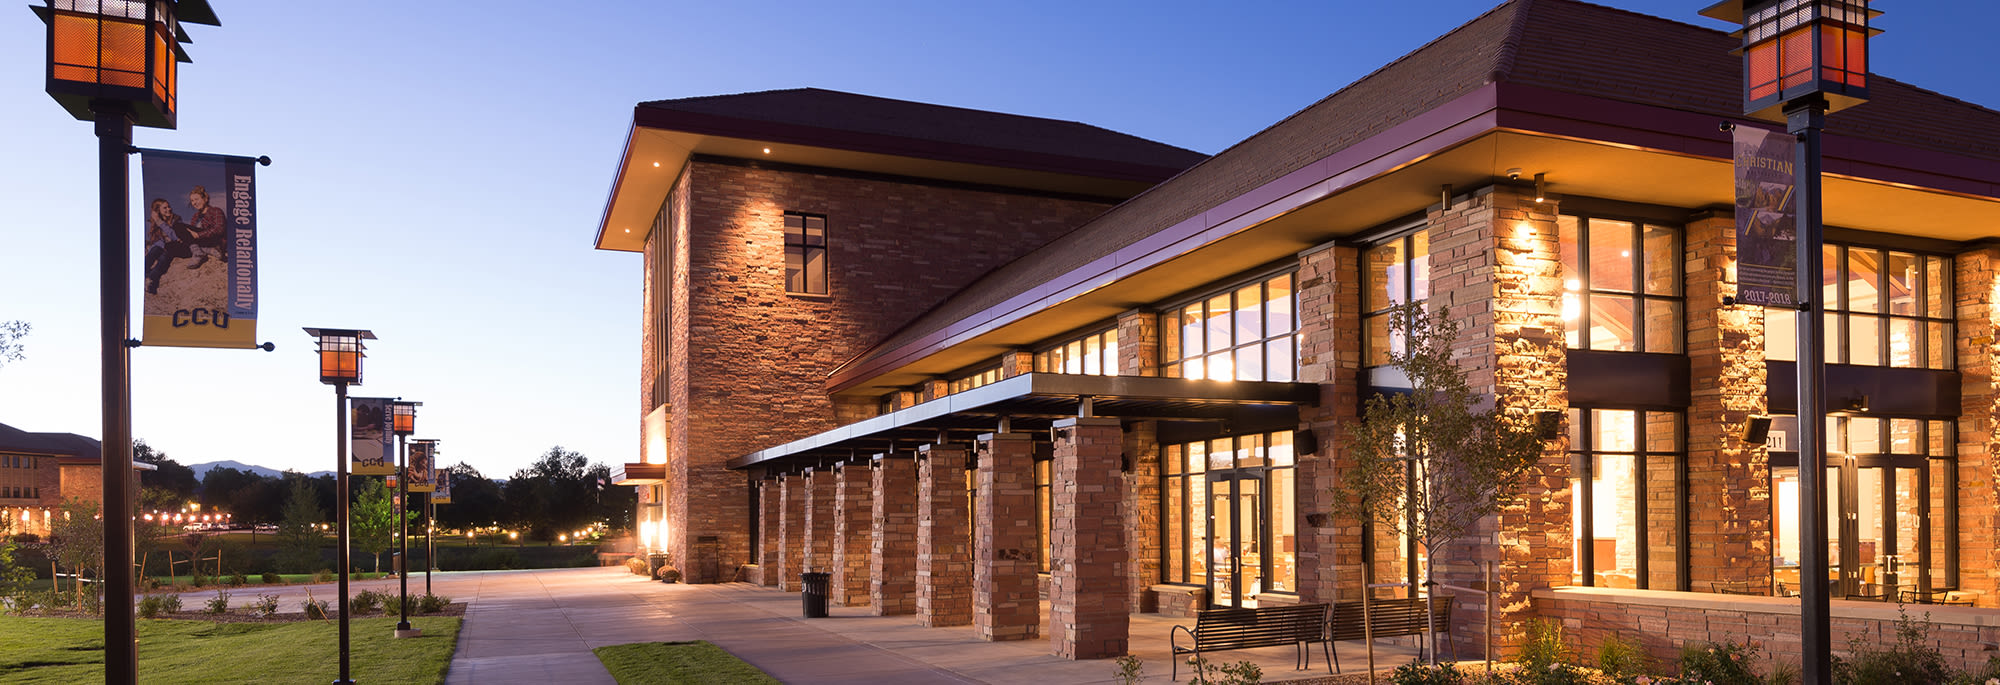 Anschutz Student Center at CCU